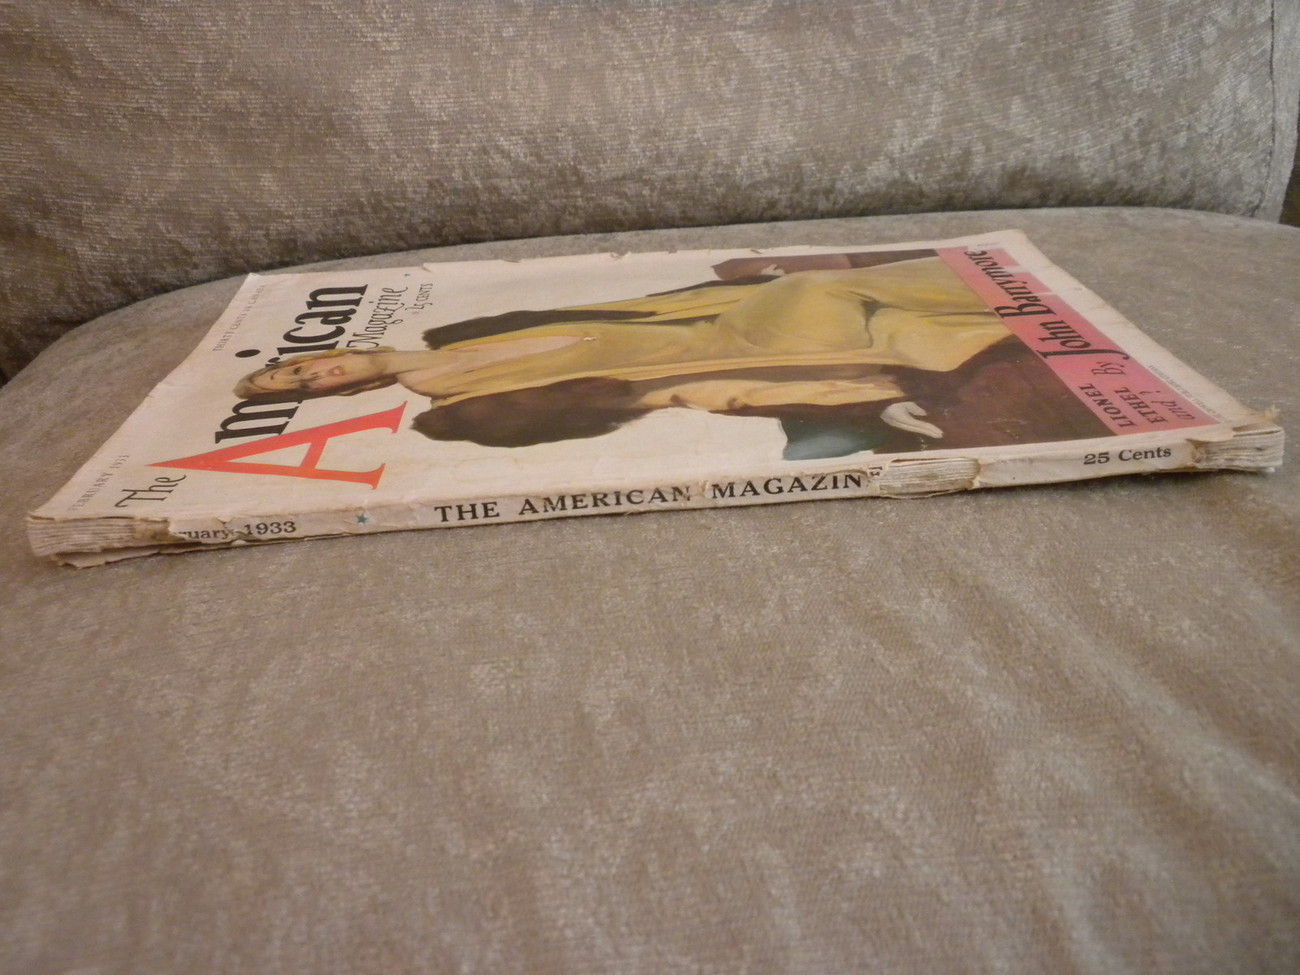 The American Magazine Feb 1933 w the Barrymores, PG Wodehouse, cover by Stanlaws